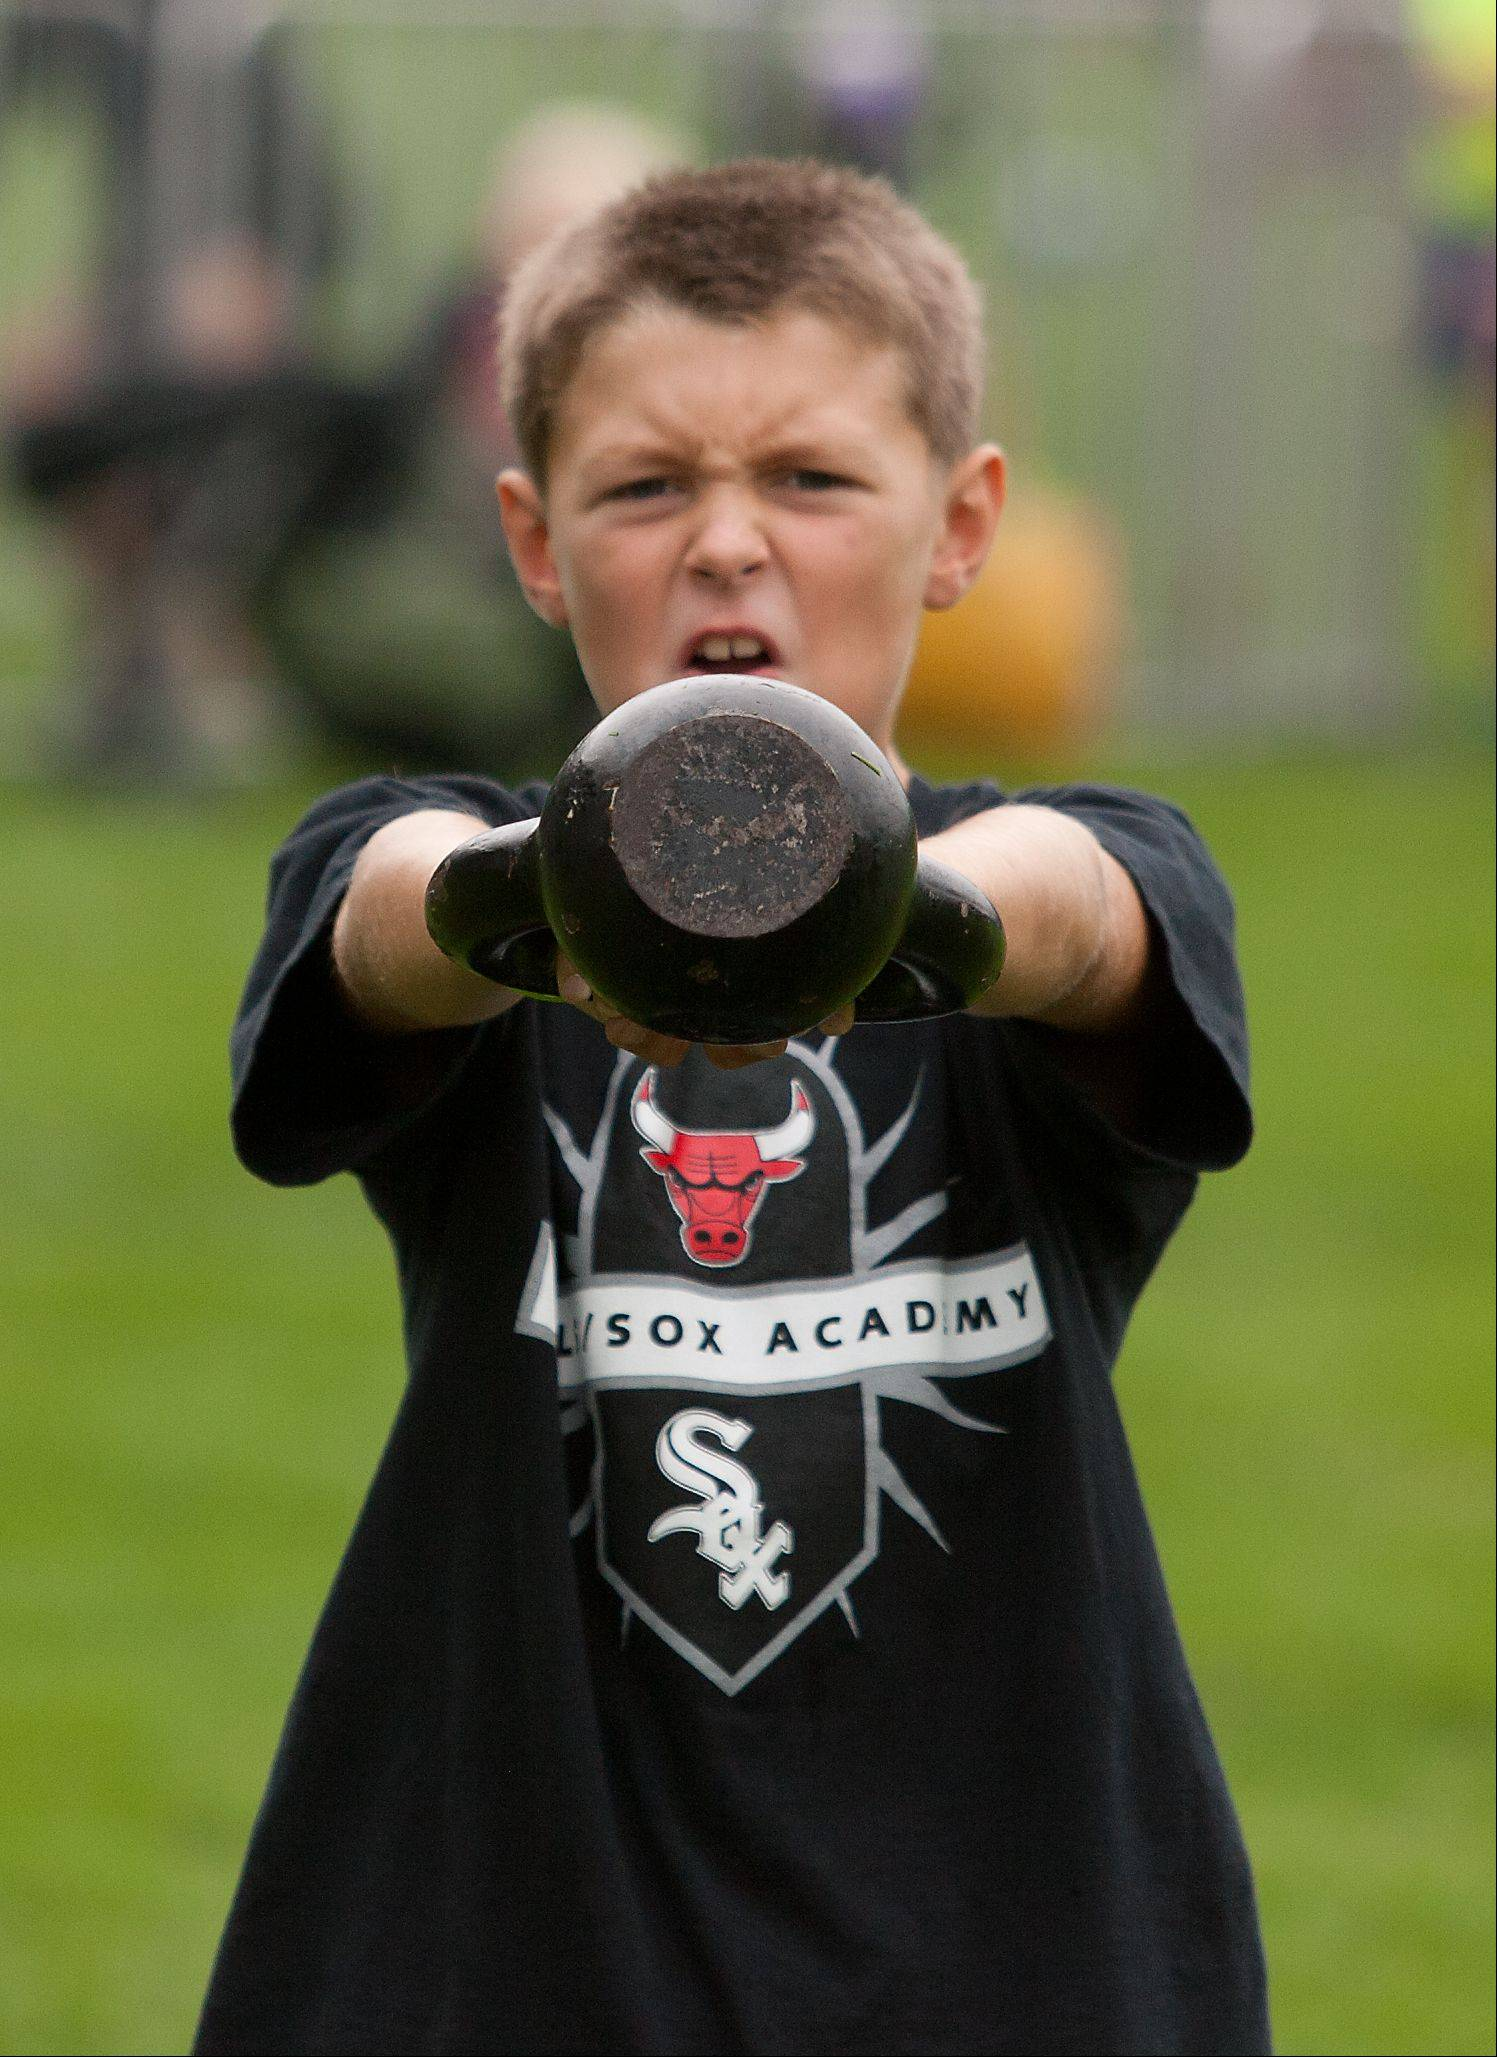 Casey Morrison, 8, of Wheaton, works with a kettle bell during the inaugural health and fitness boot camp Tuesday at Cantigny Park in Wheaton.